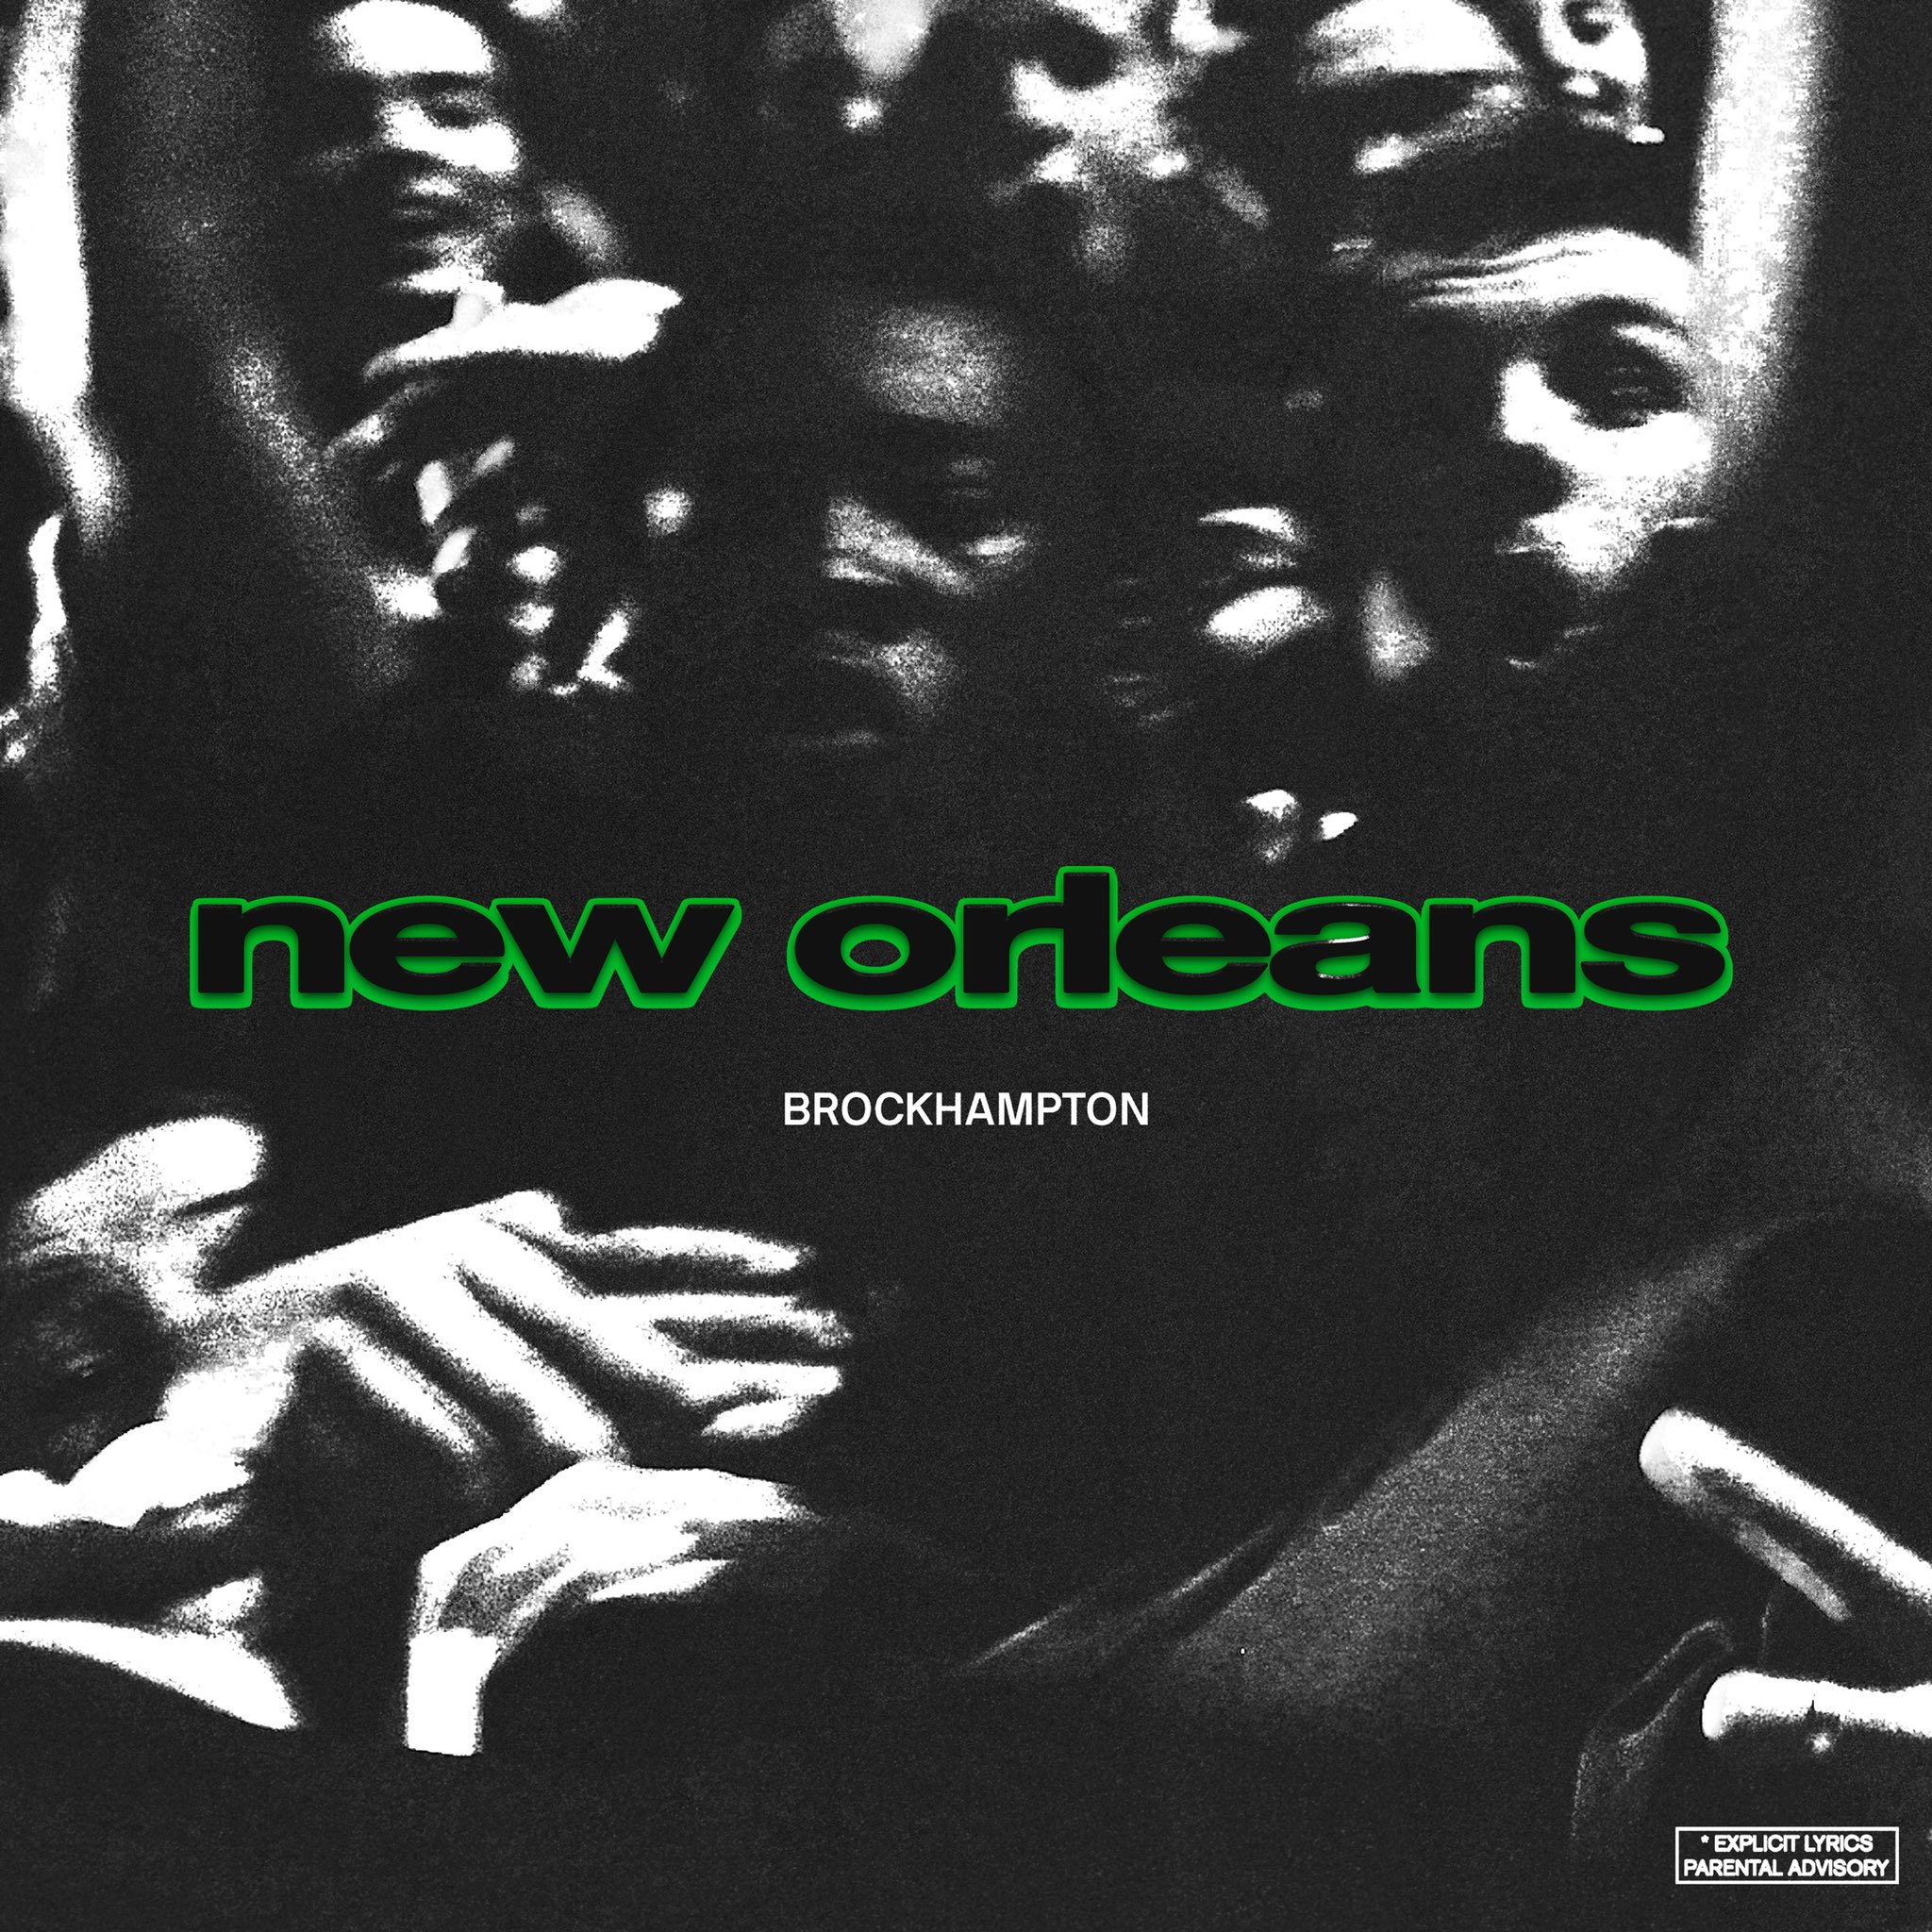 brockhampton new orleans новый клип